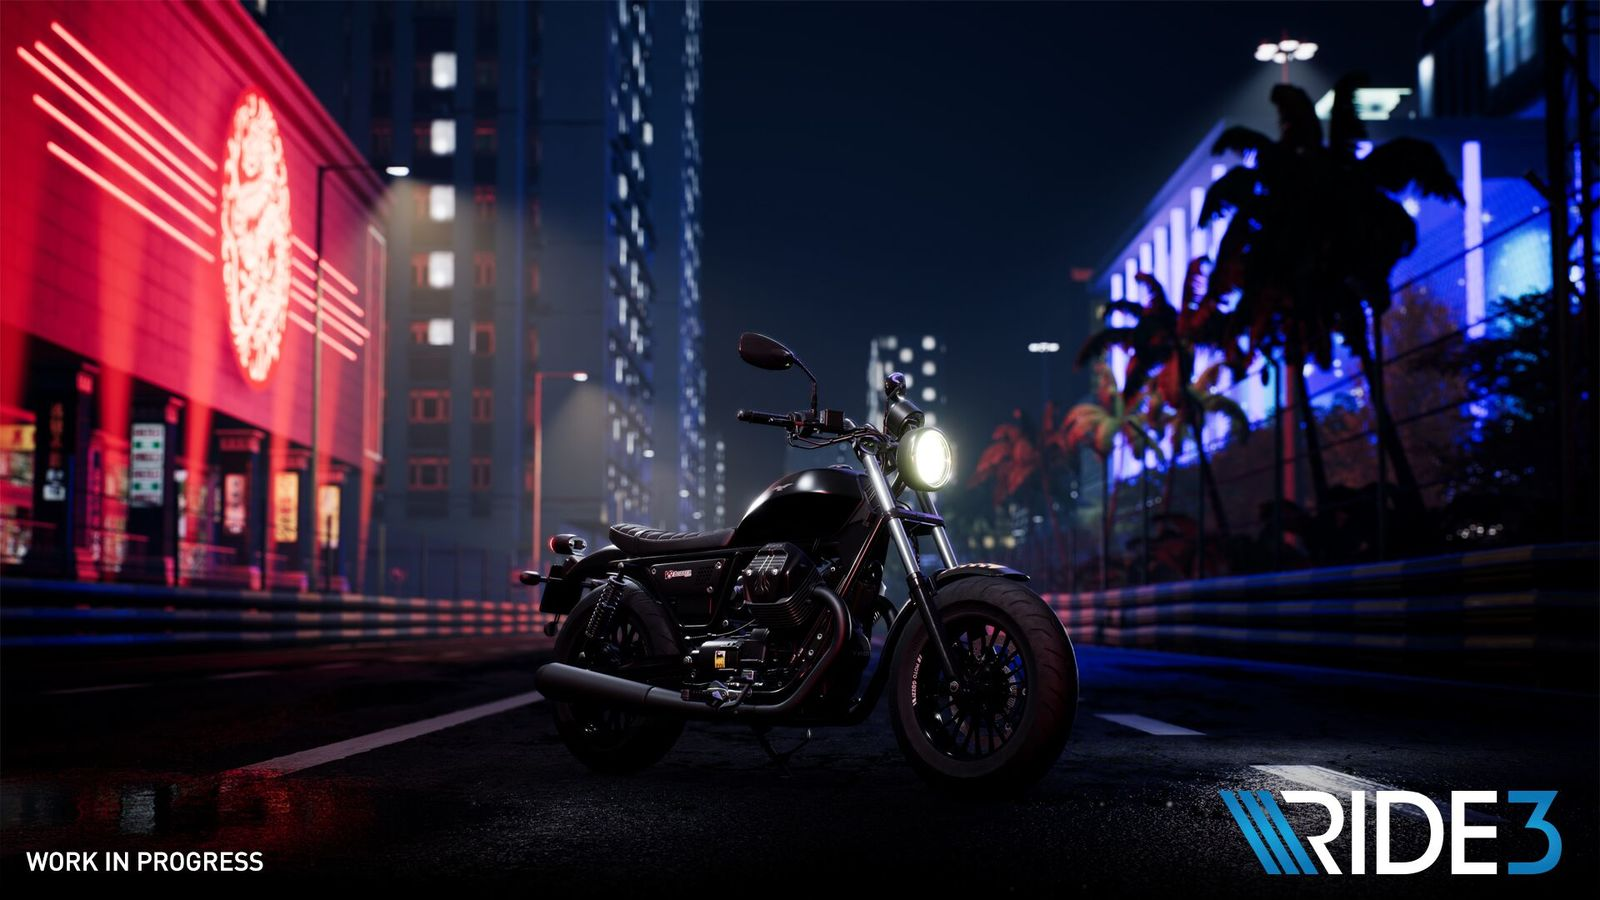 Ride 3 for PS4 image